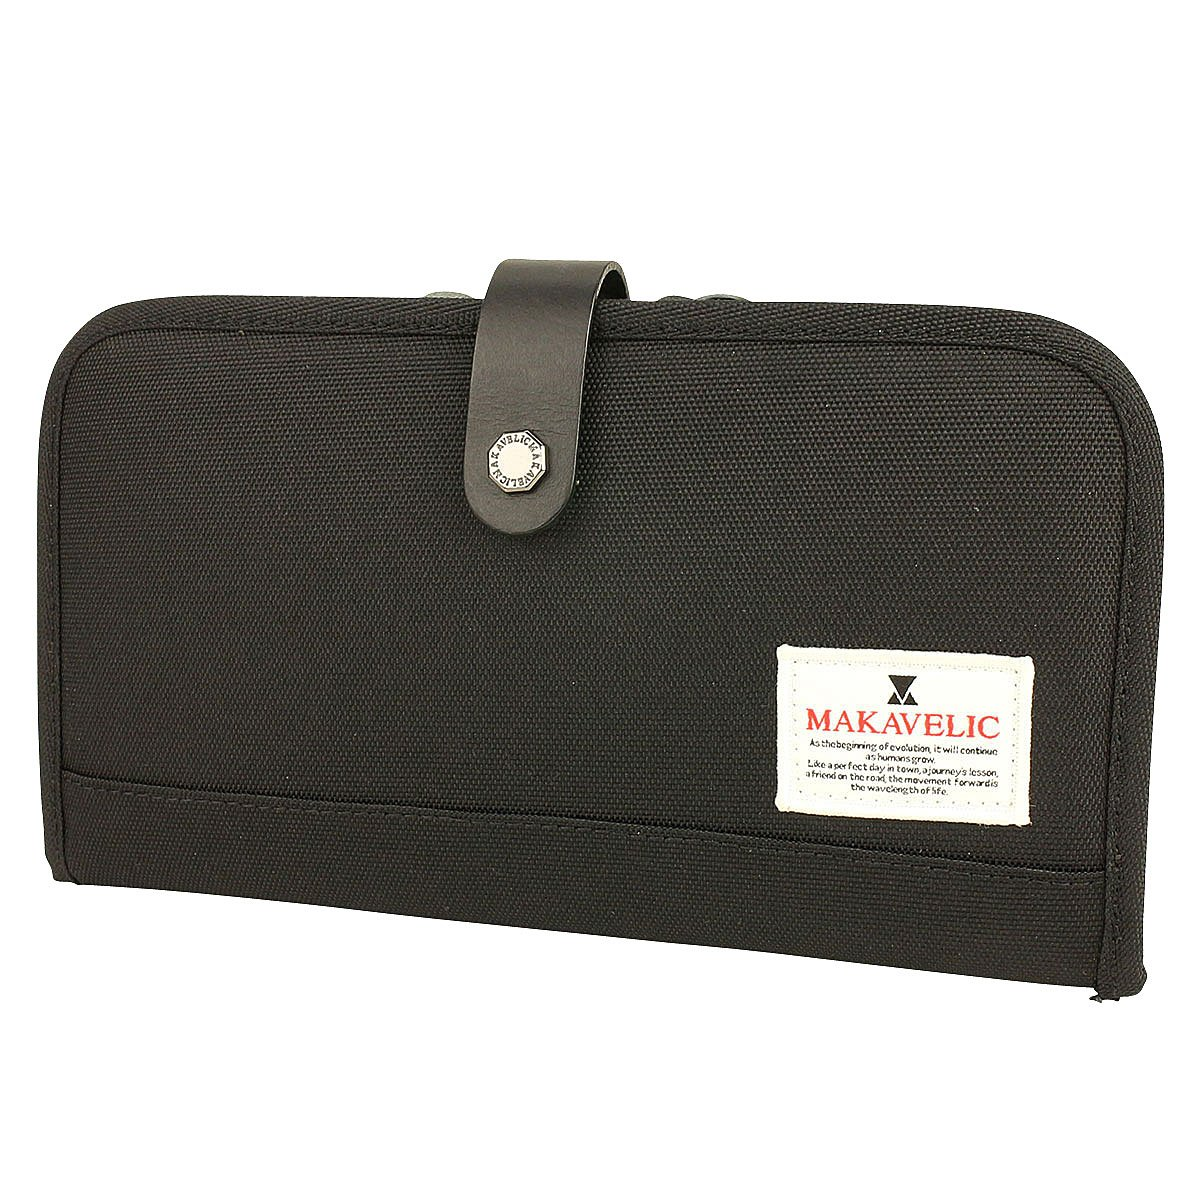 MAKAVELIC TRUCKS Pass Case 3105-30802